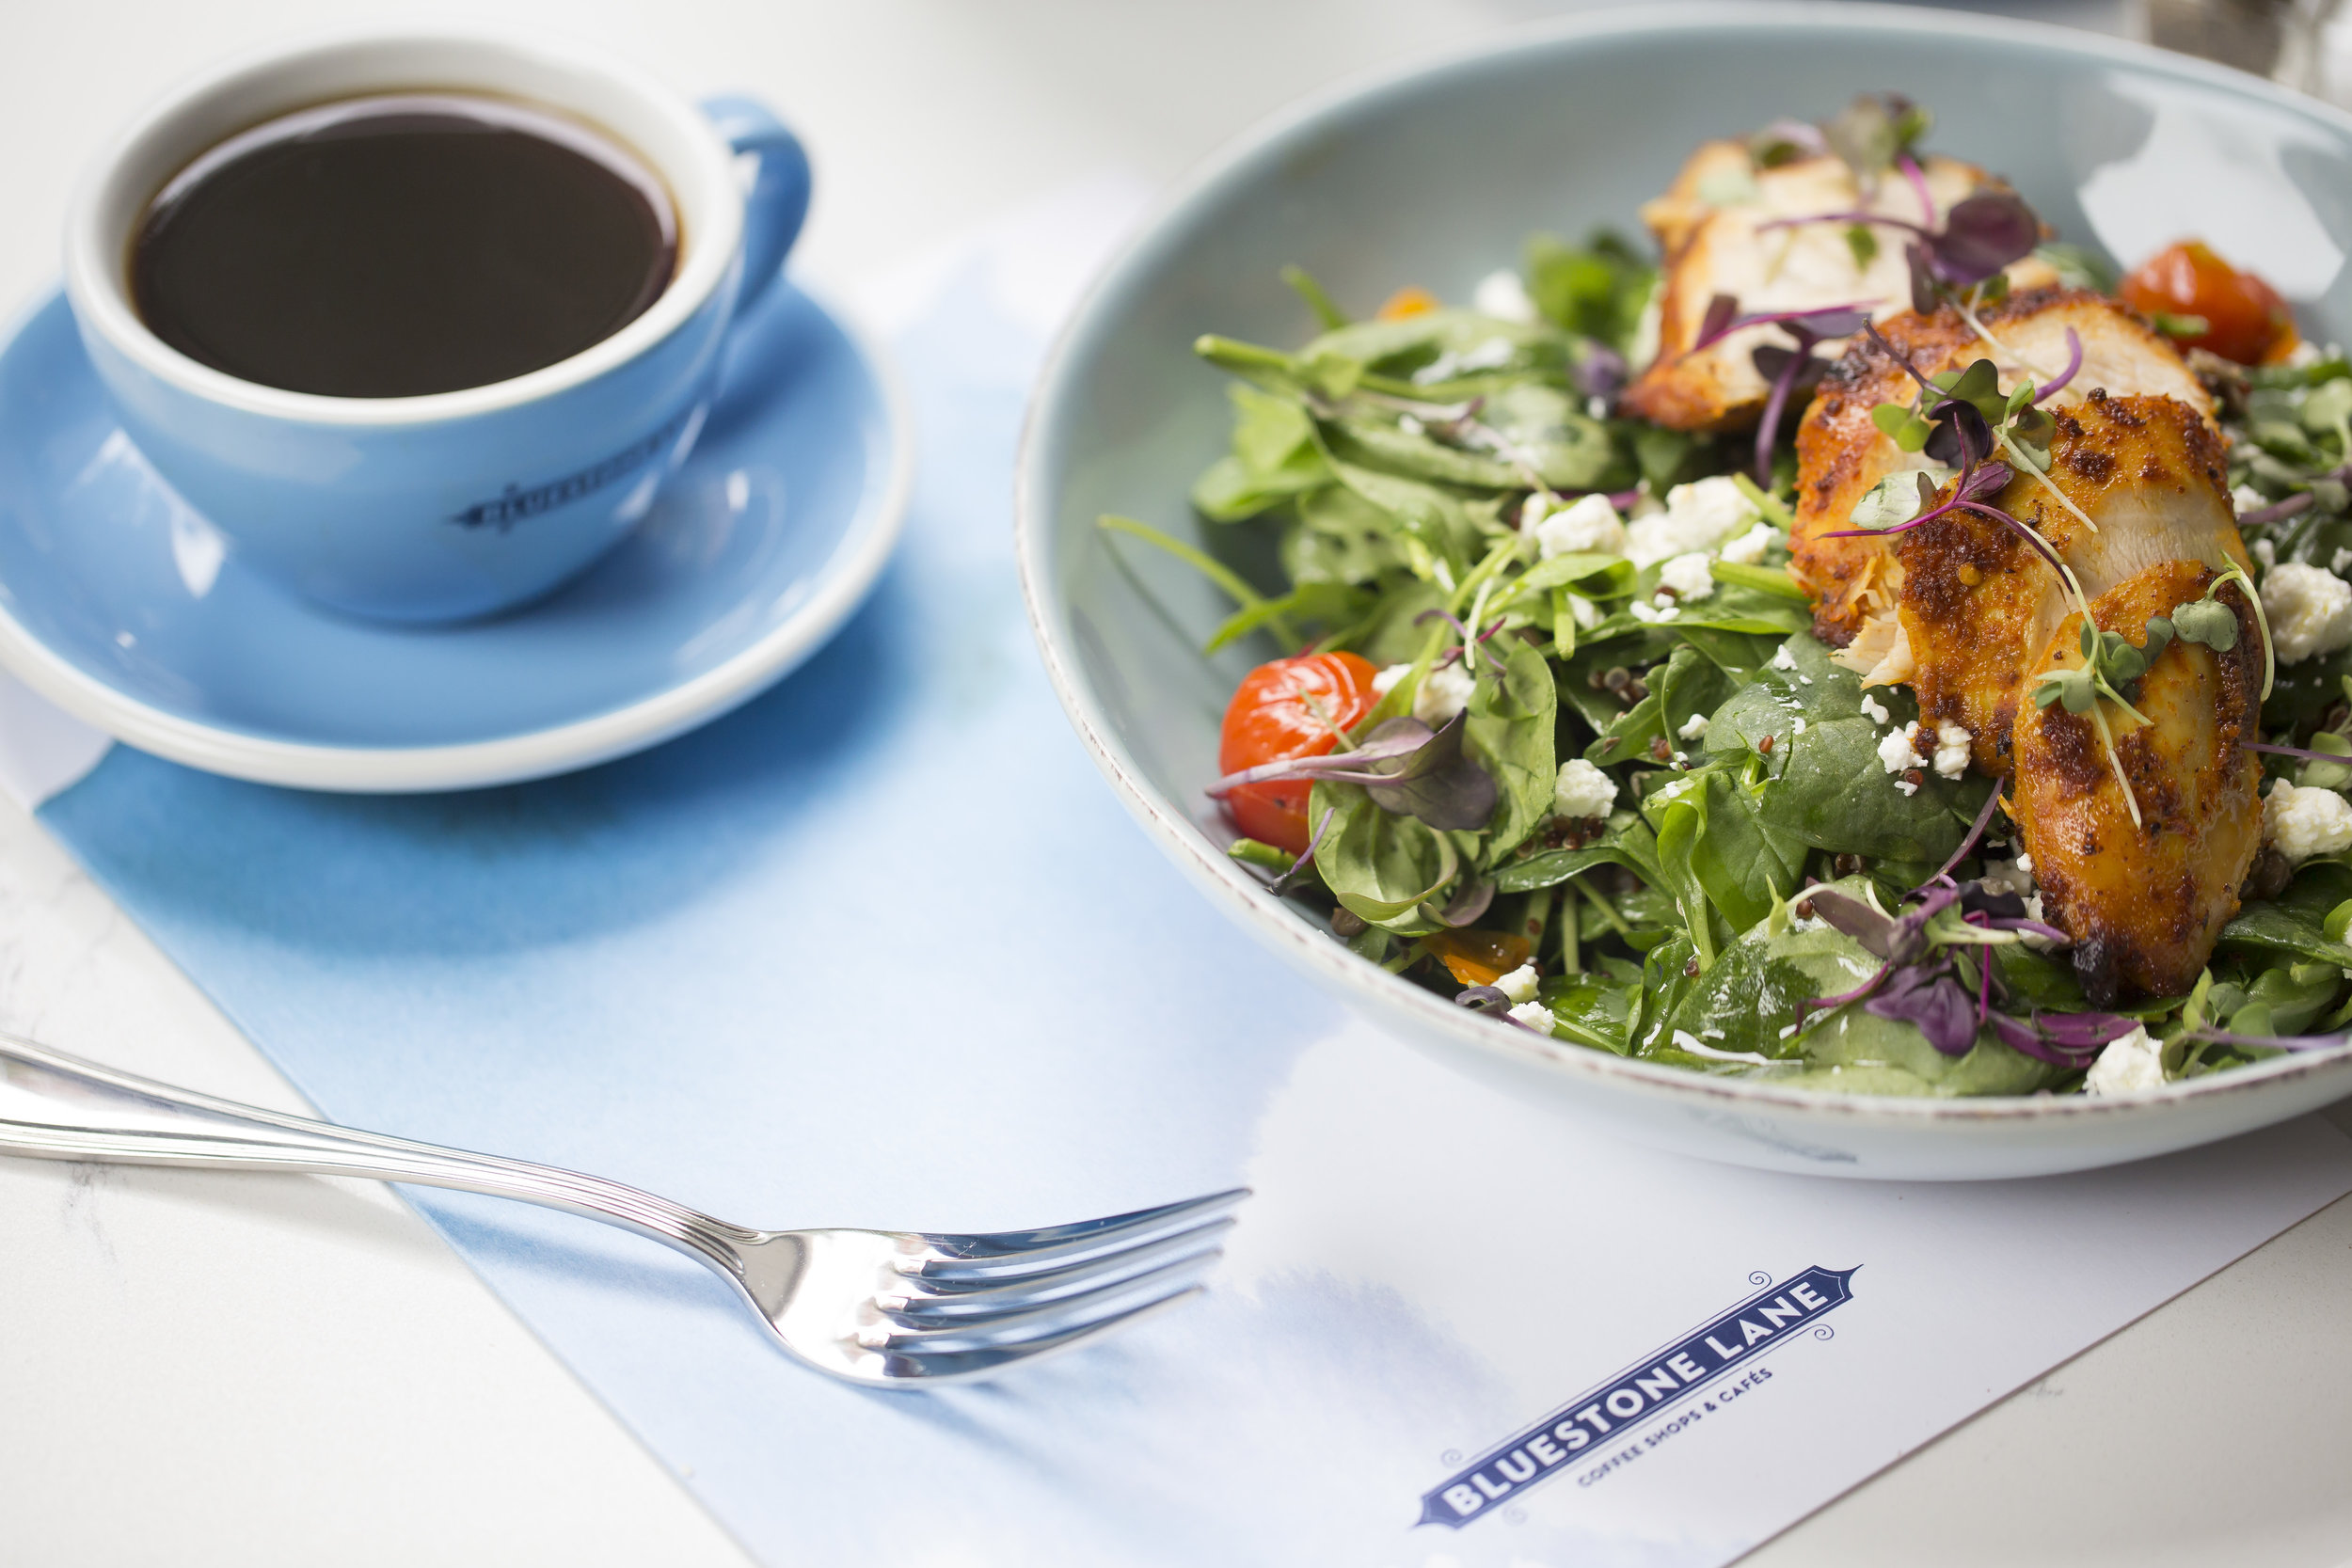 Coffee and Salad Photo